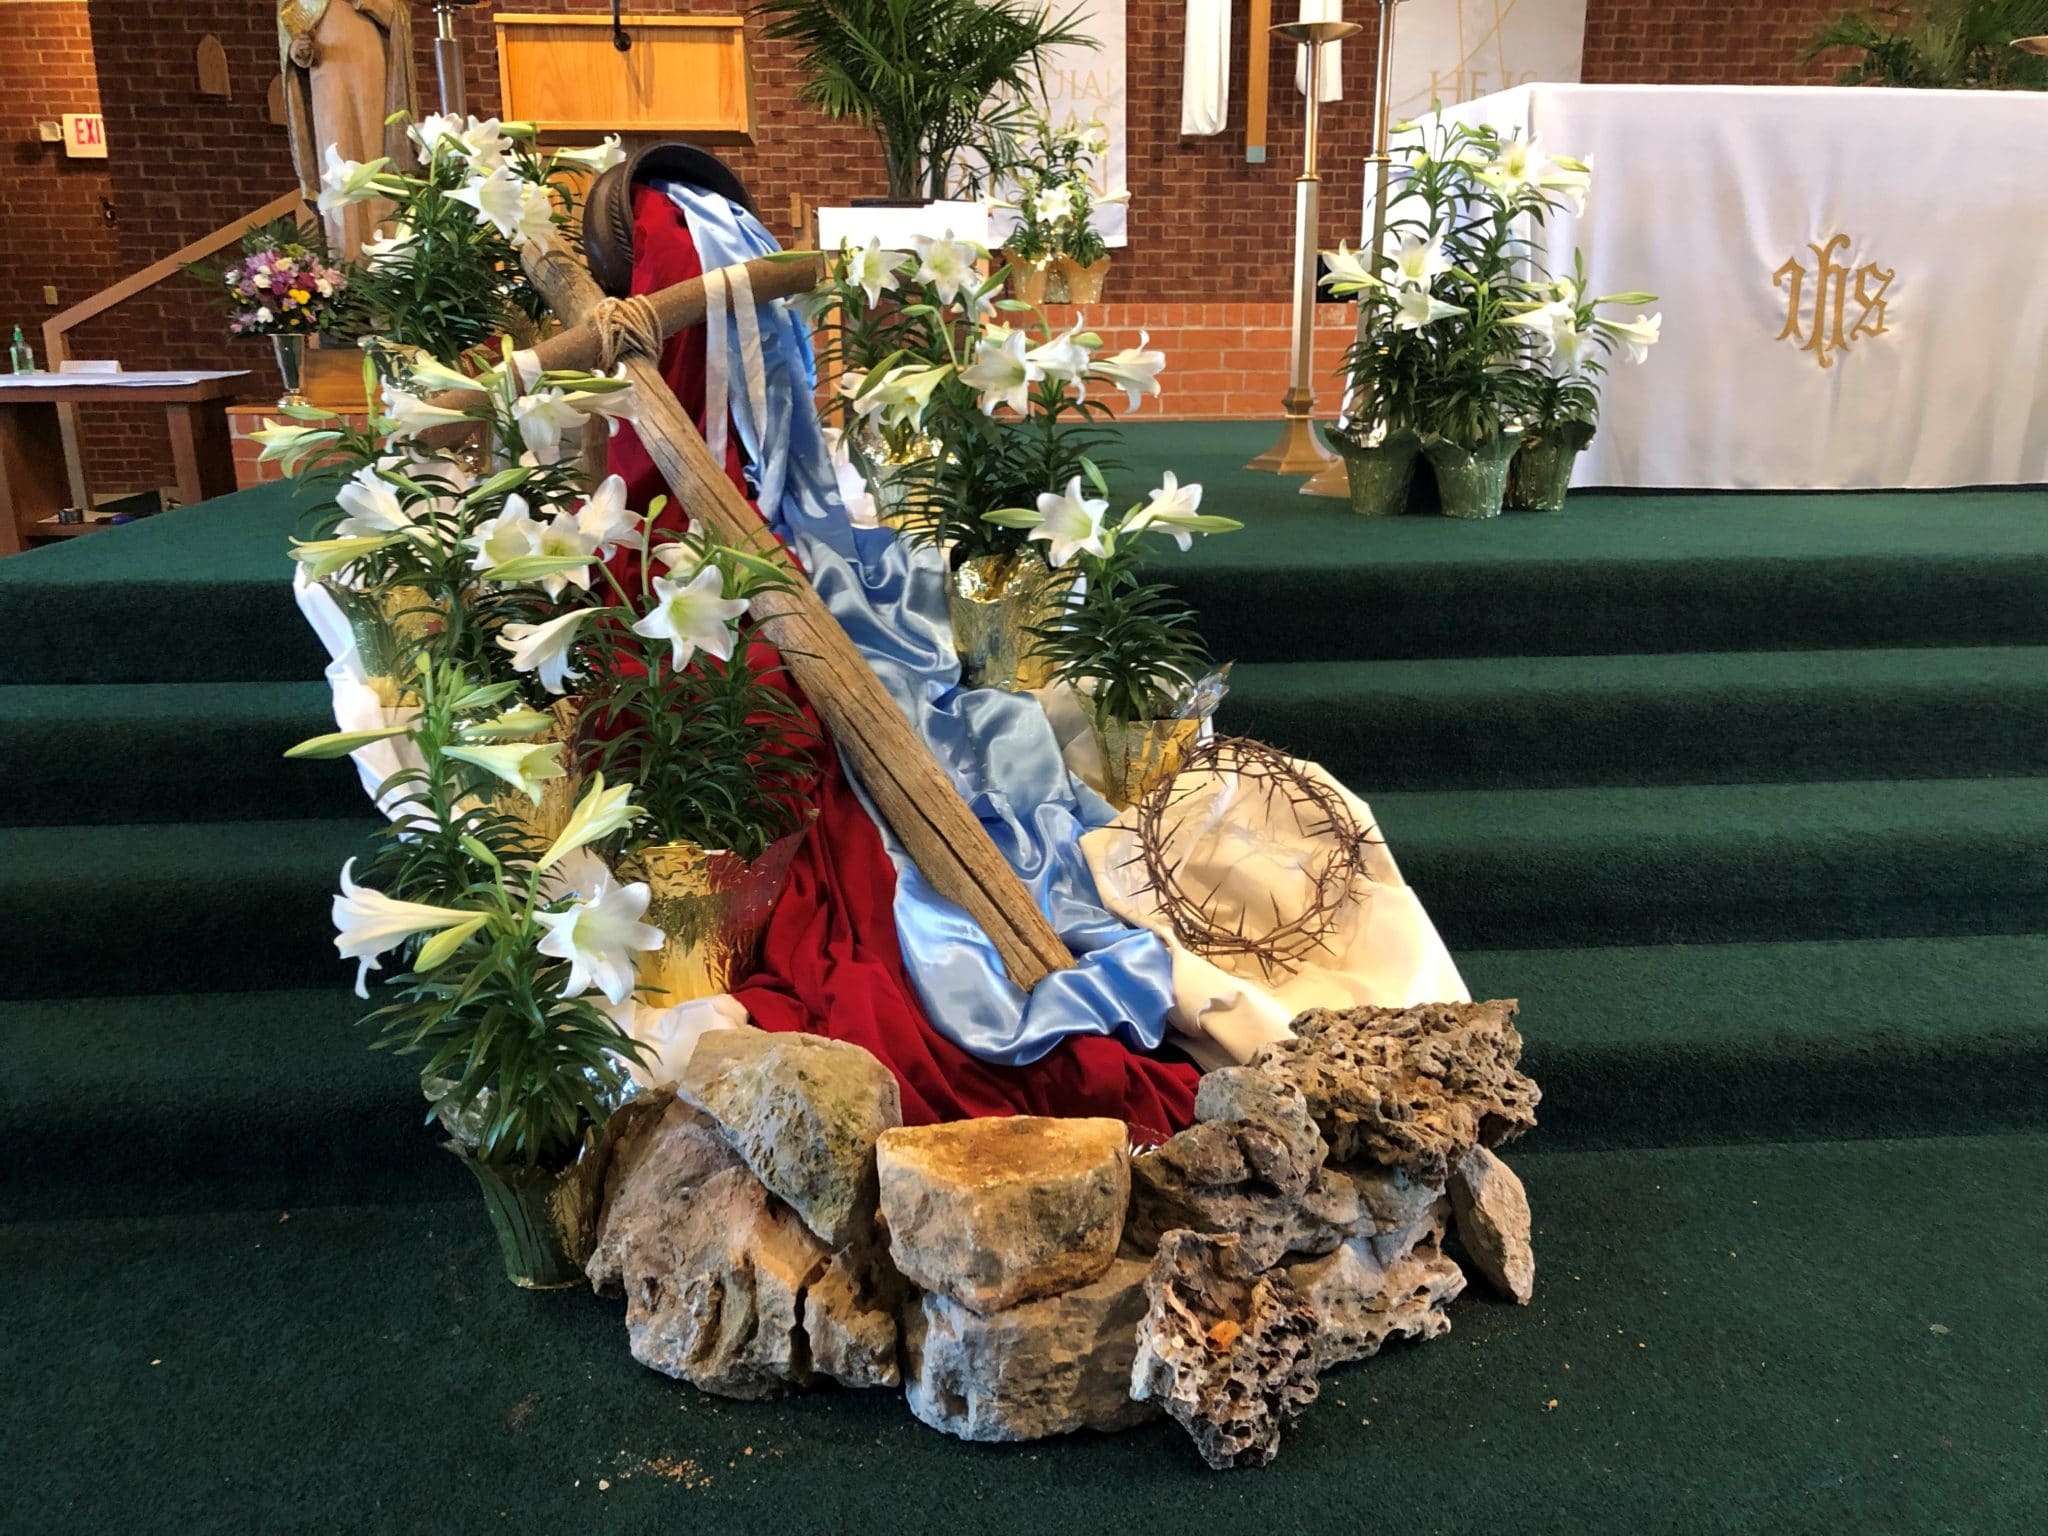 Our Lady of the Lake Easter Sanctuary Decorations